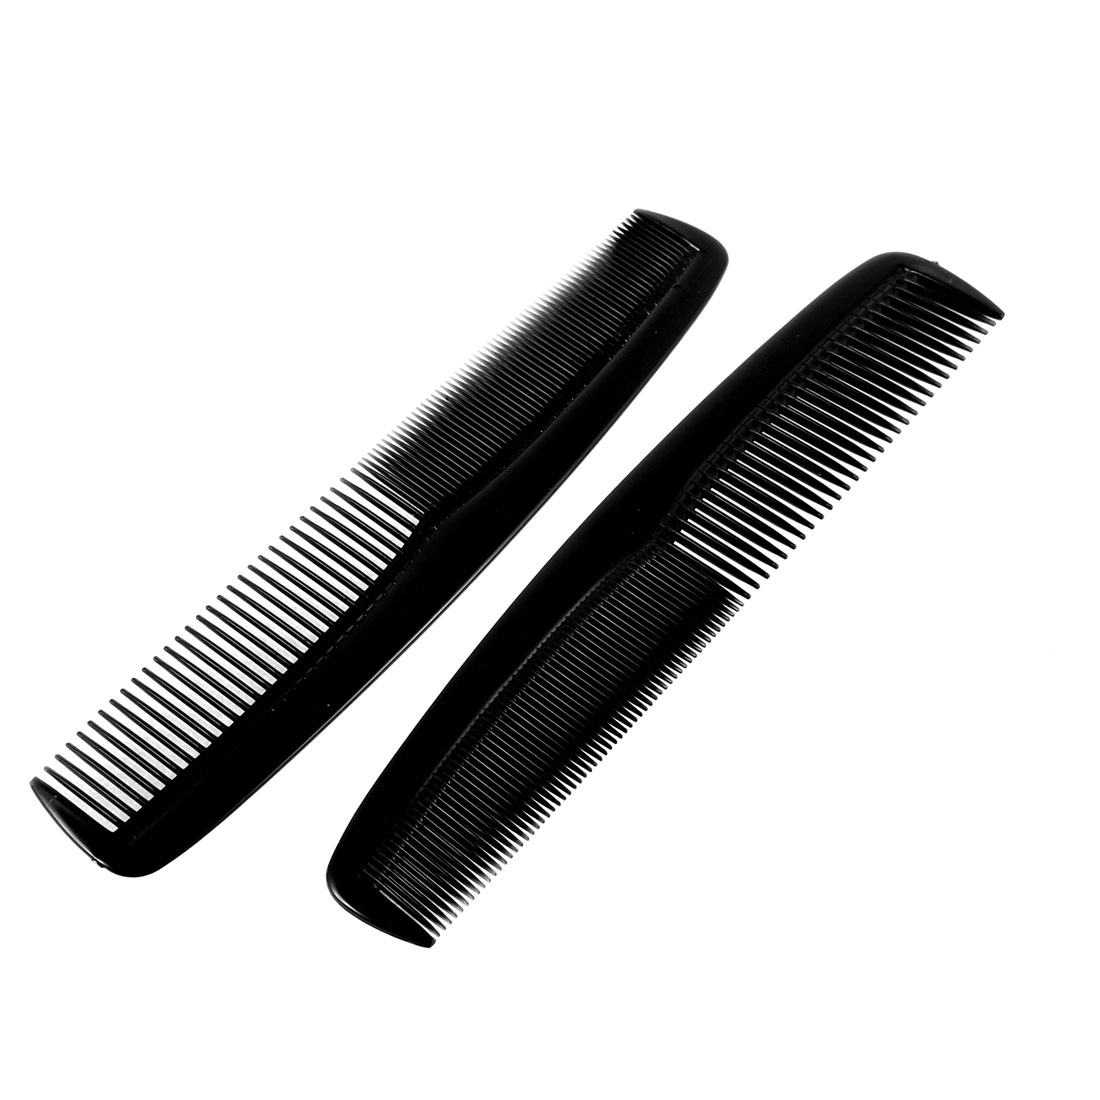 Barber Shop Salon Hairdressing Haircut Plastic Hair Comb Black 21cm Length 2 Pcs